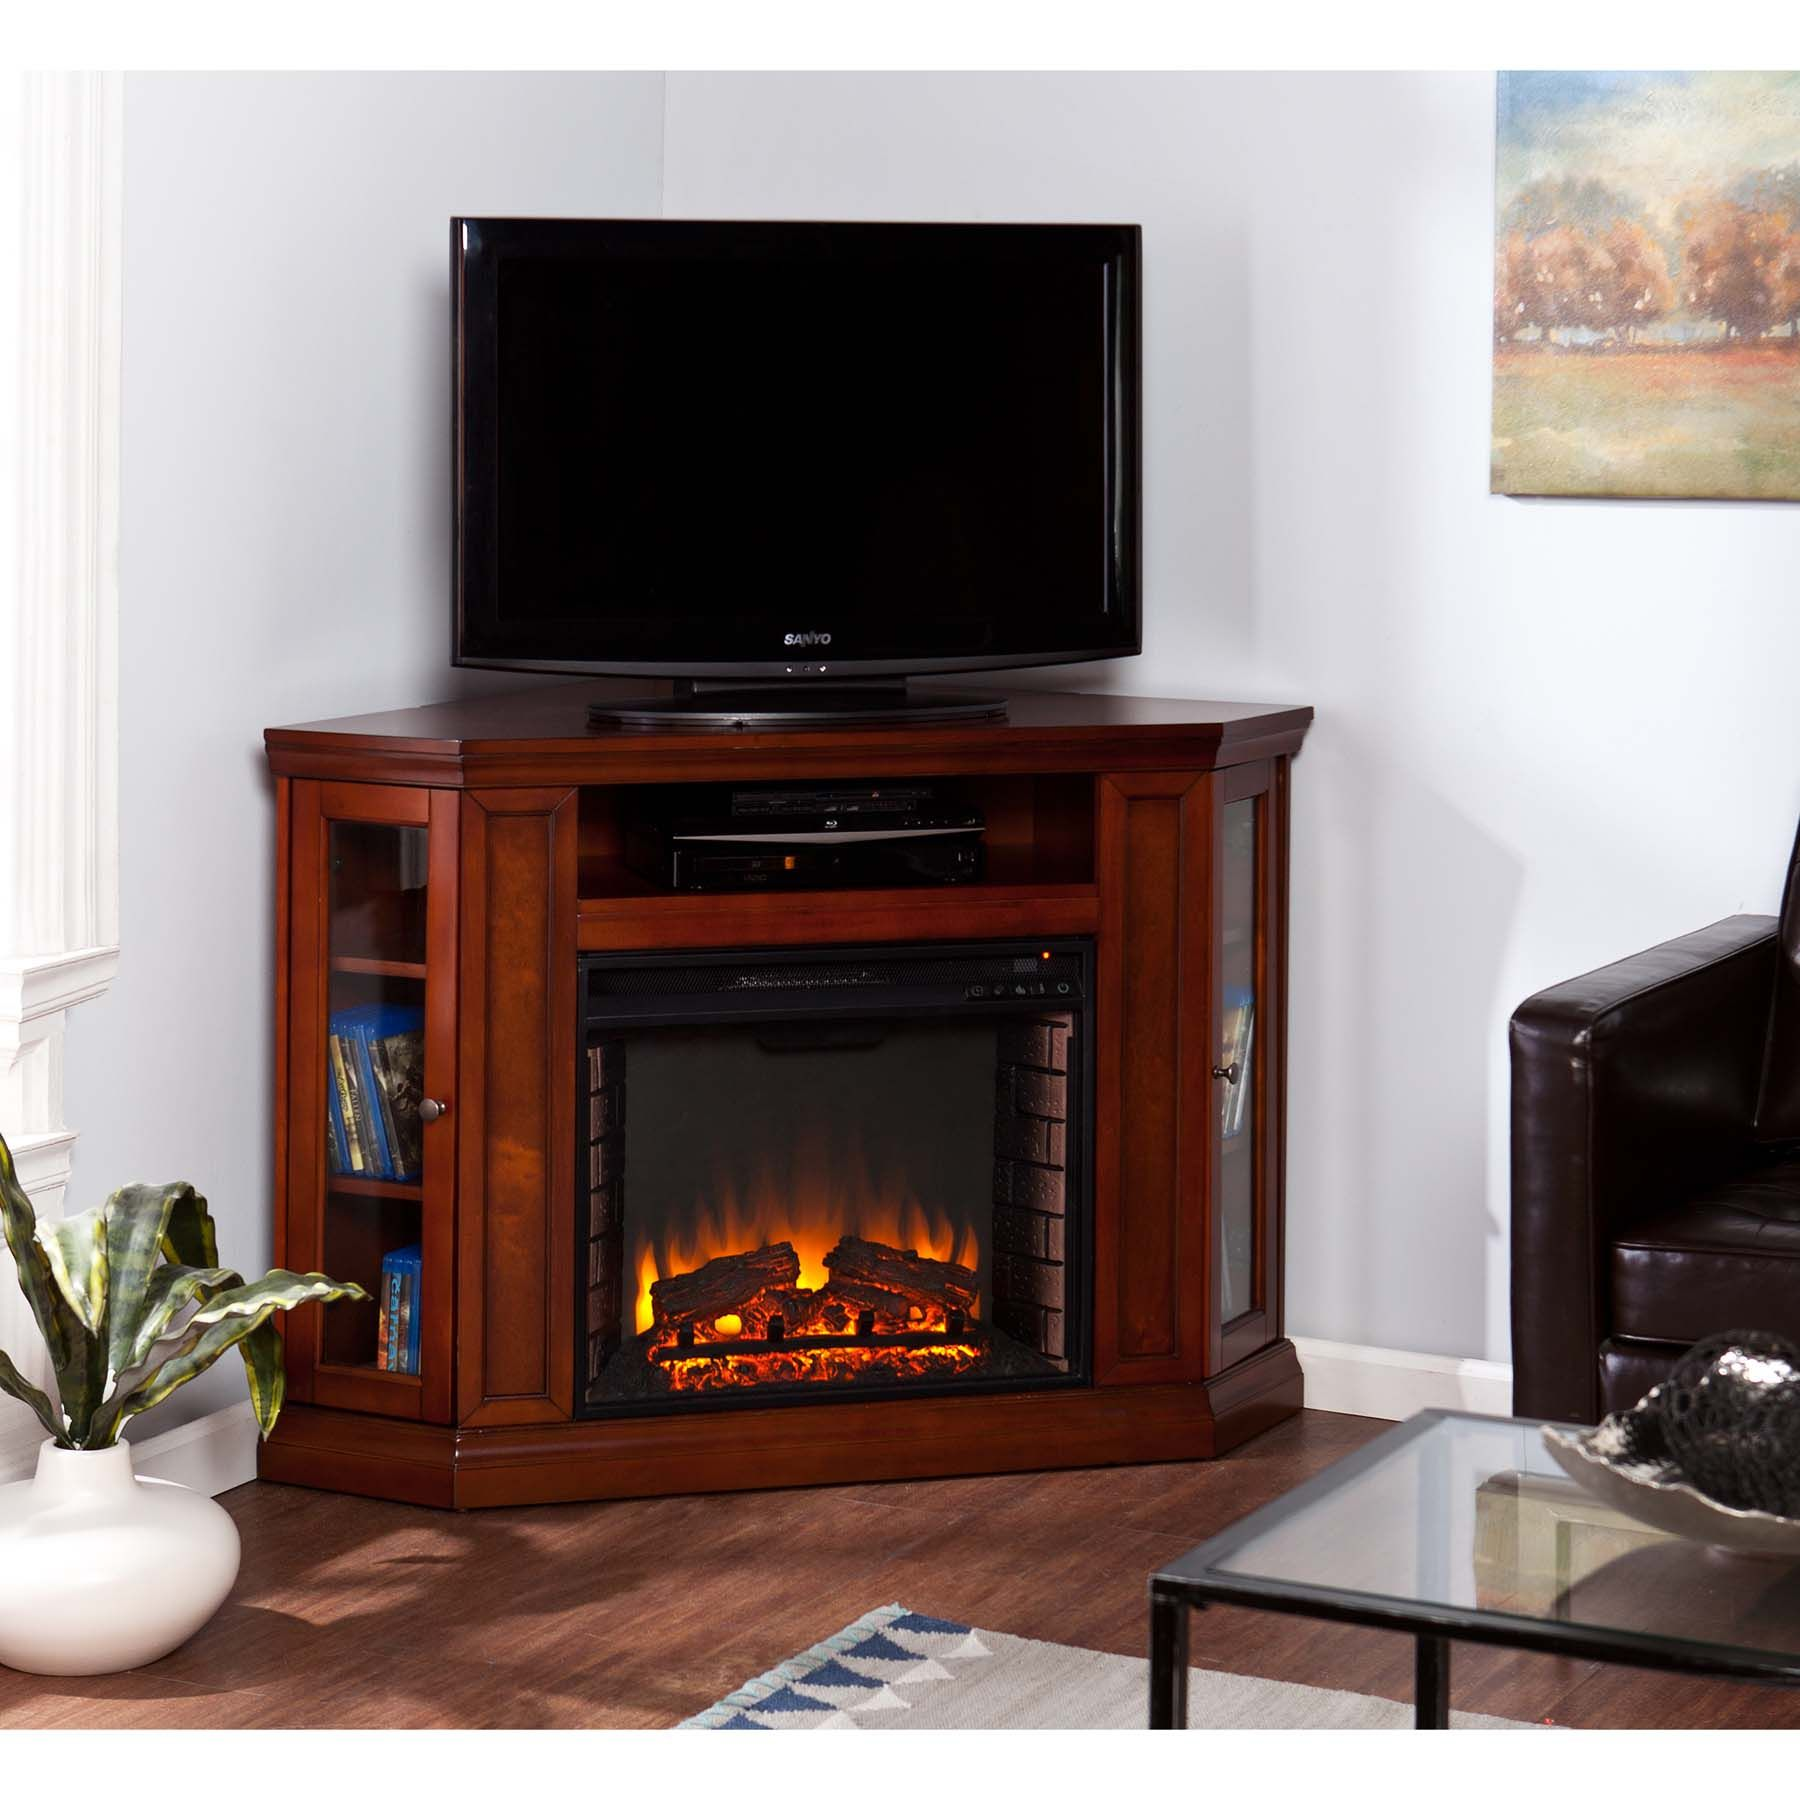 Kohls Electric Fireplace Luxury 42 Best Rustic Fireplace Images